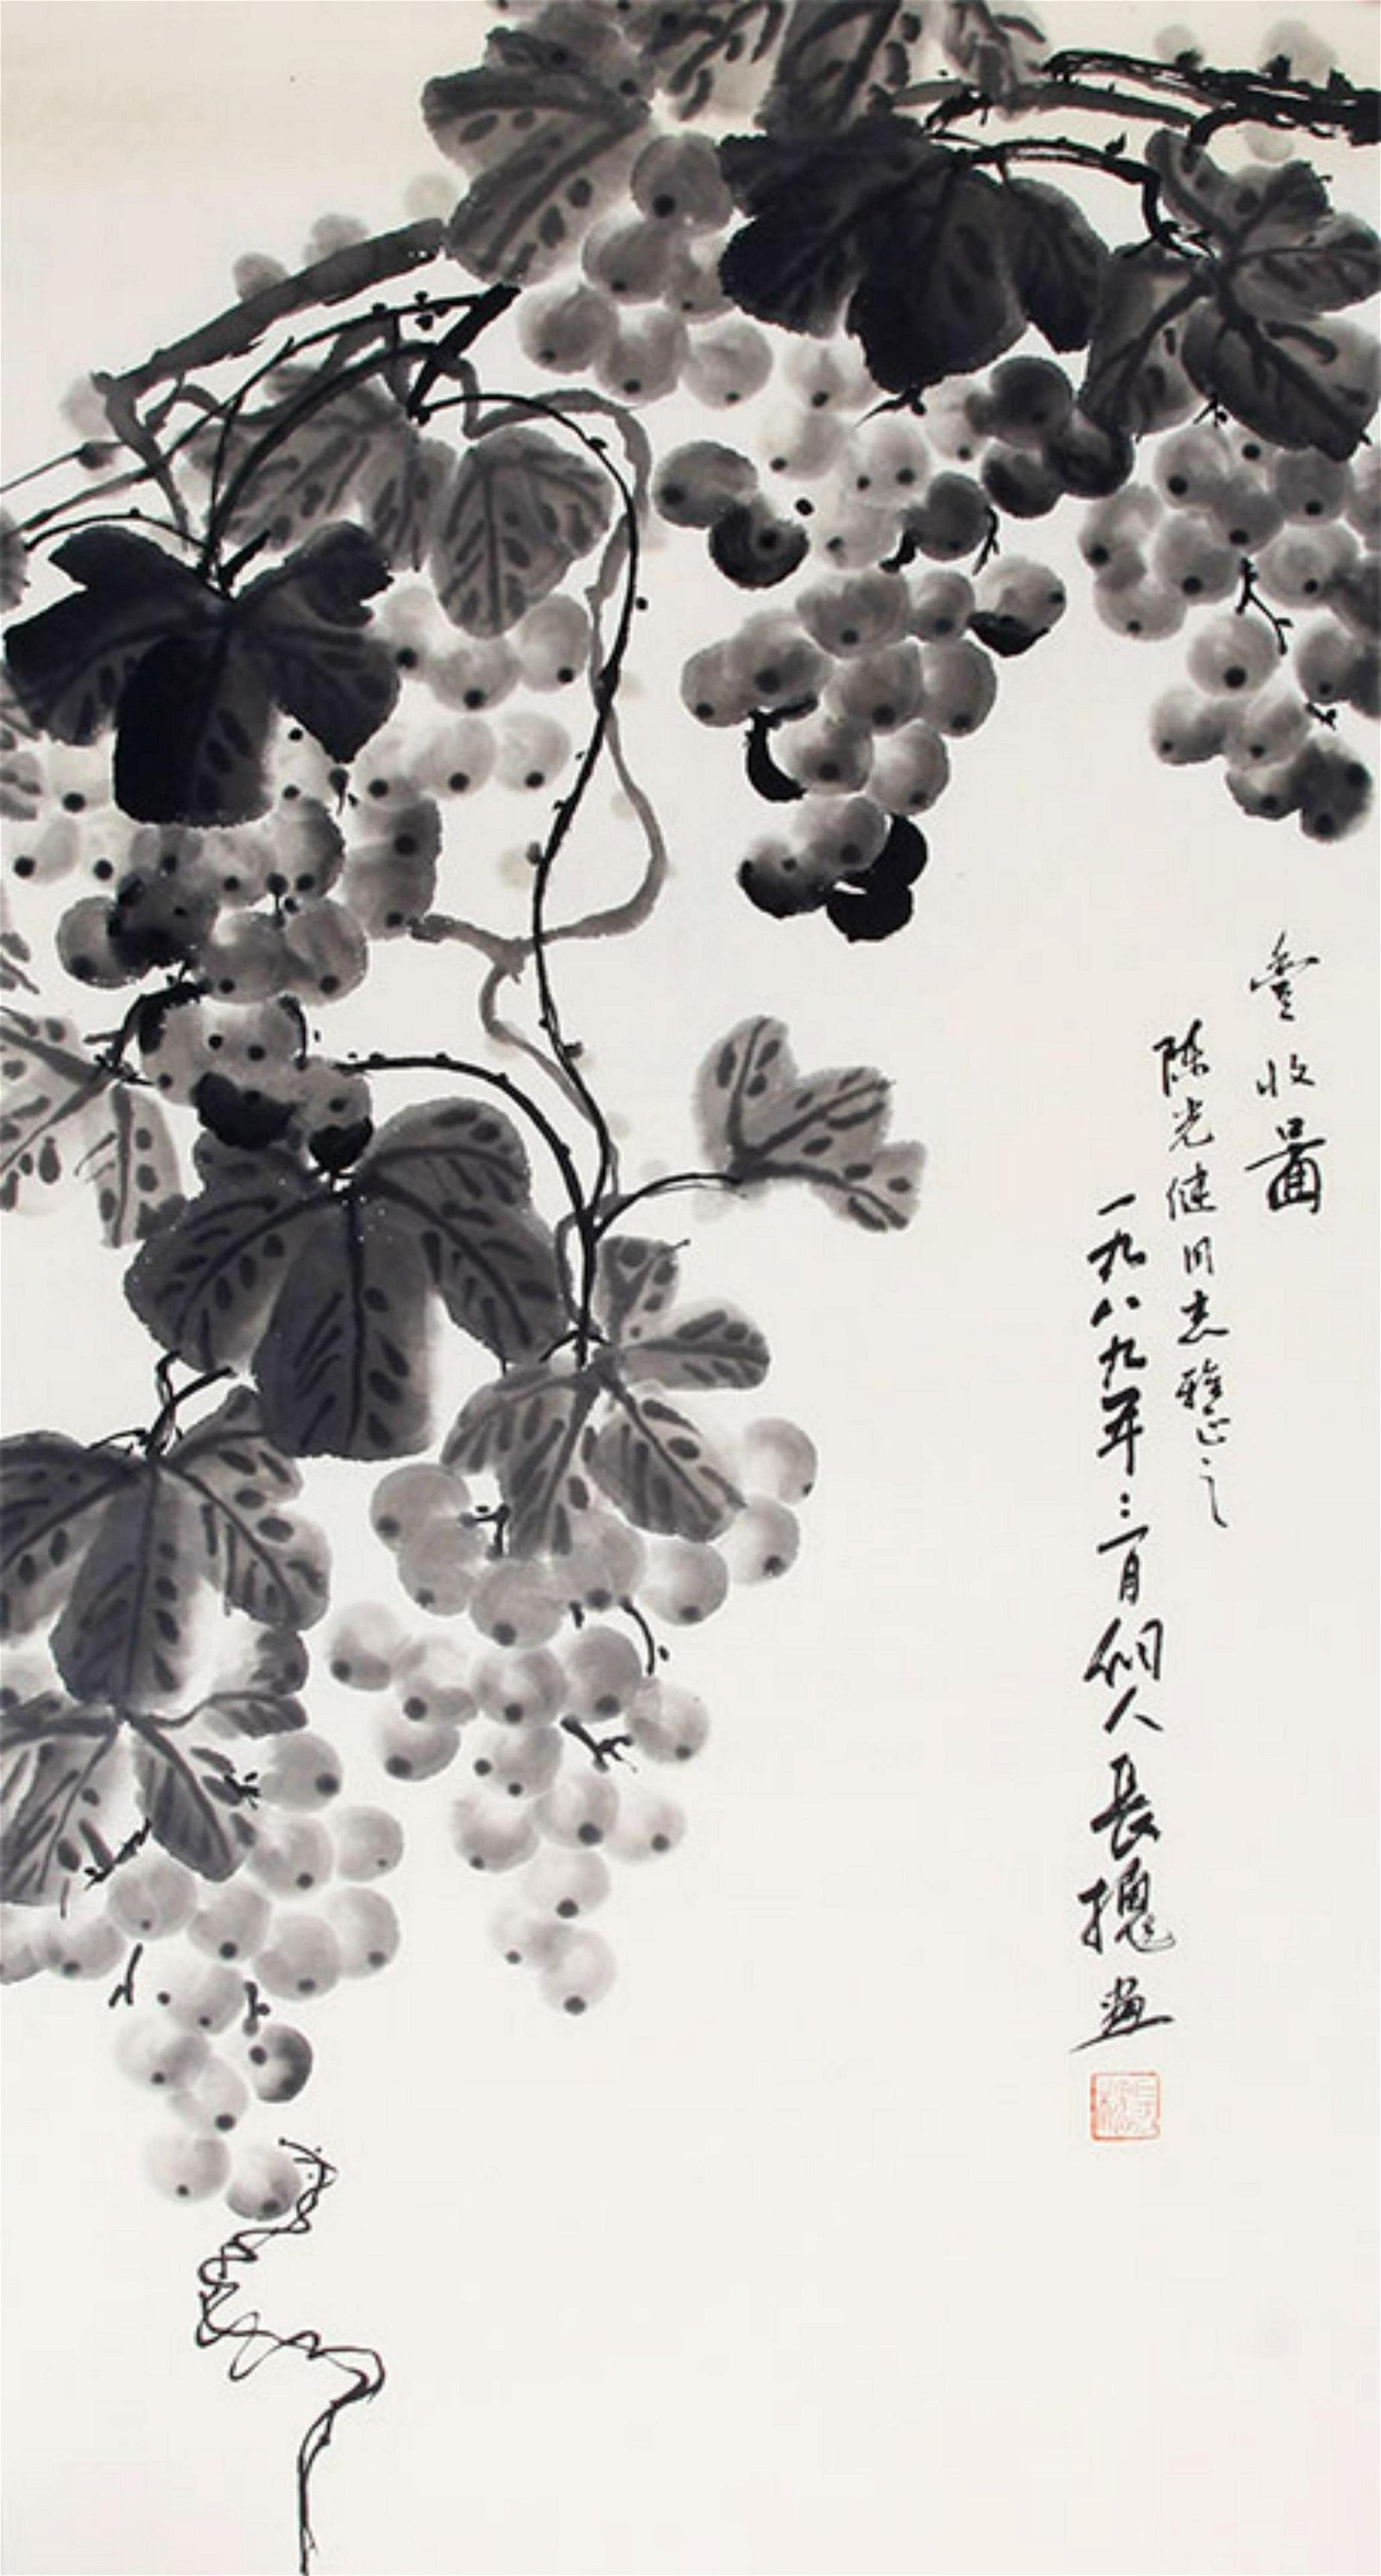 YANG CHANG KUI CHINESE PAINTING, ATTRIBUTED TO